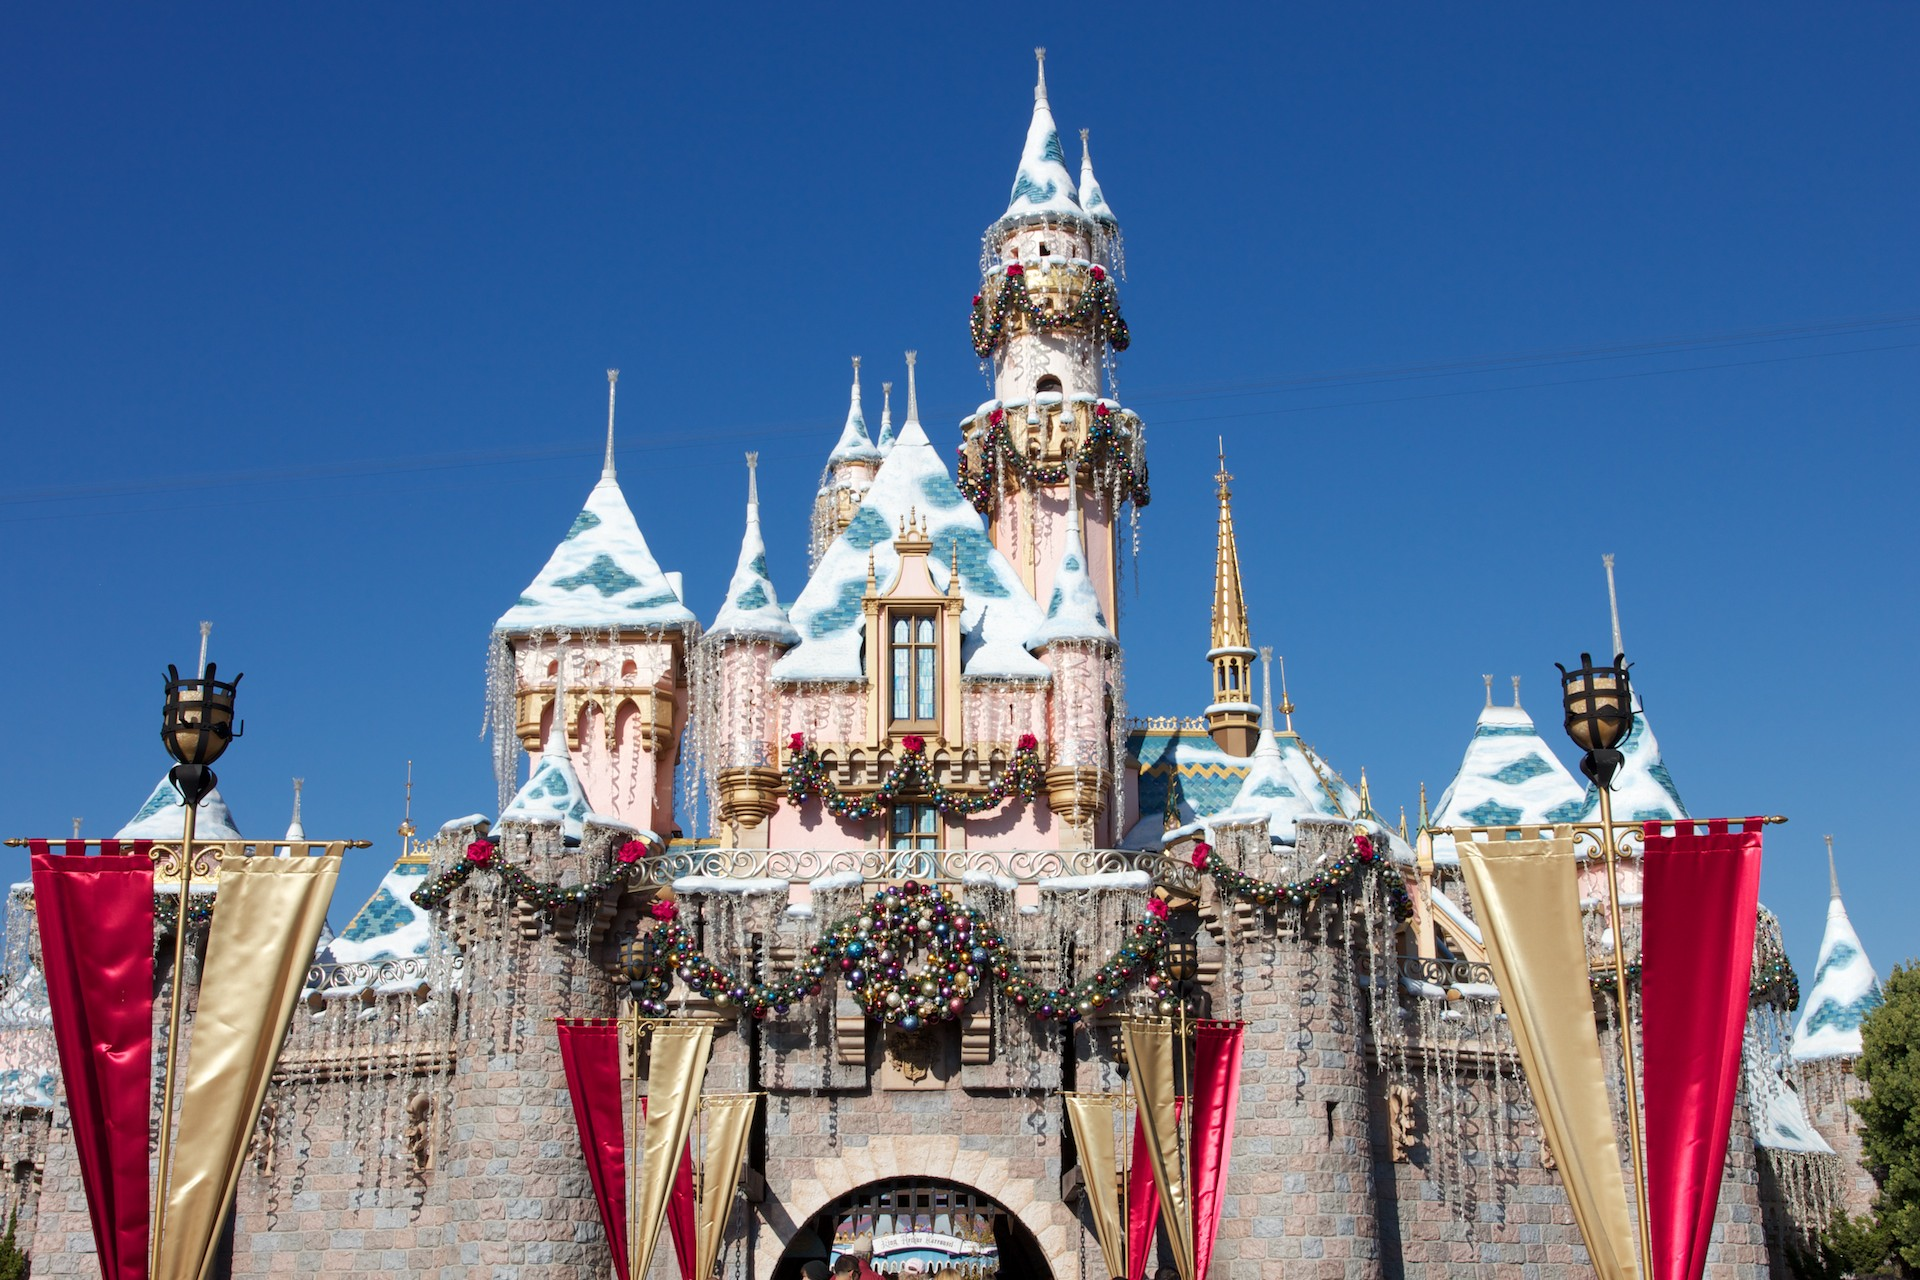 Walt Disney Christmas Wallpaper.Sleeping Beauty Castle Disneyland California At Christmas